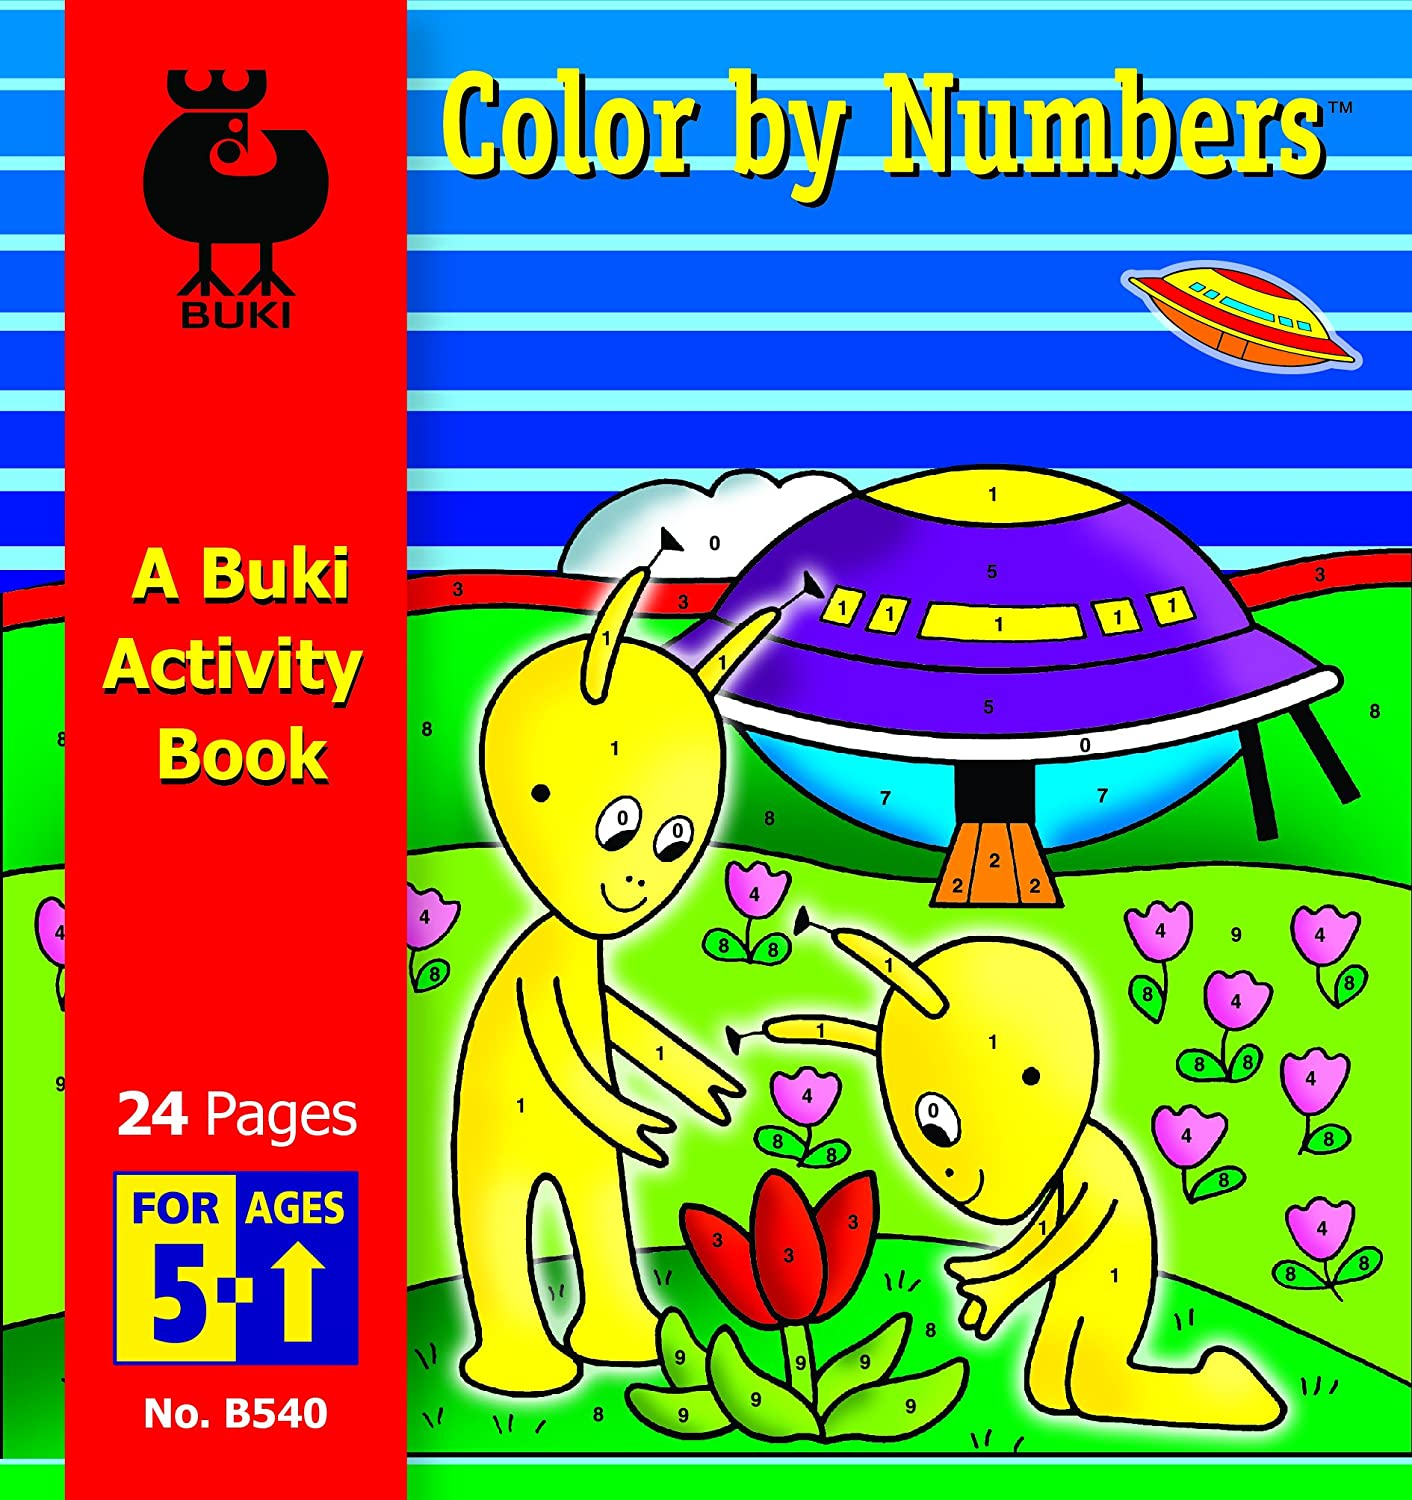 Amazon.com: Buki Color by Numbers Activity Book, Small: Toys & Games